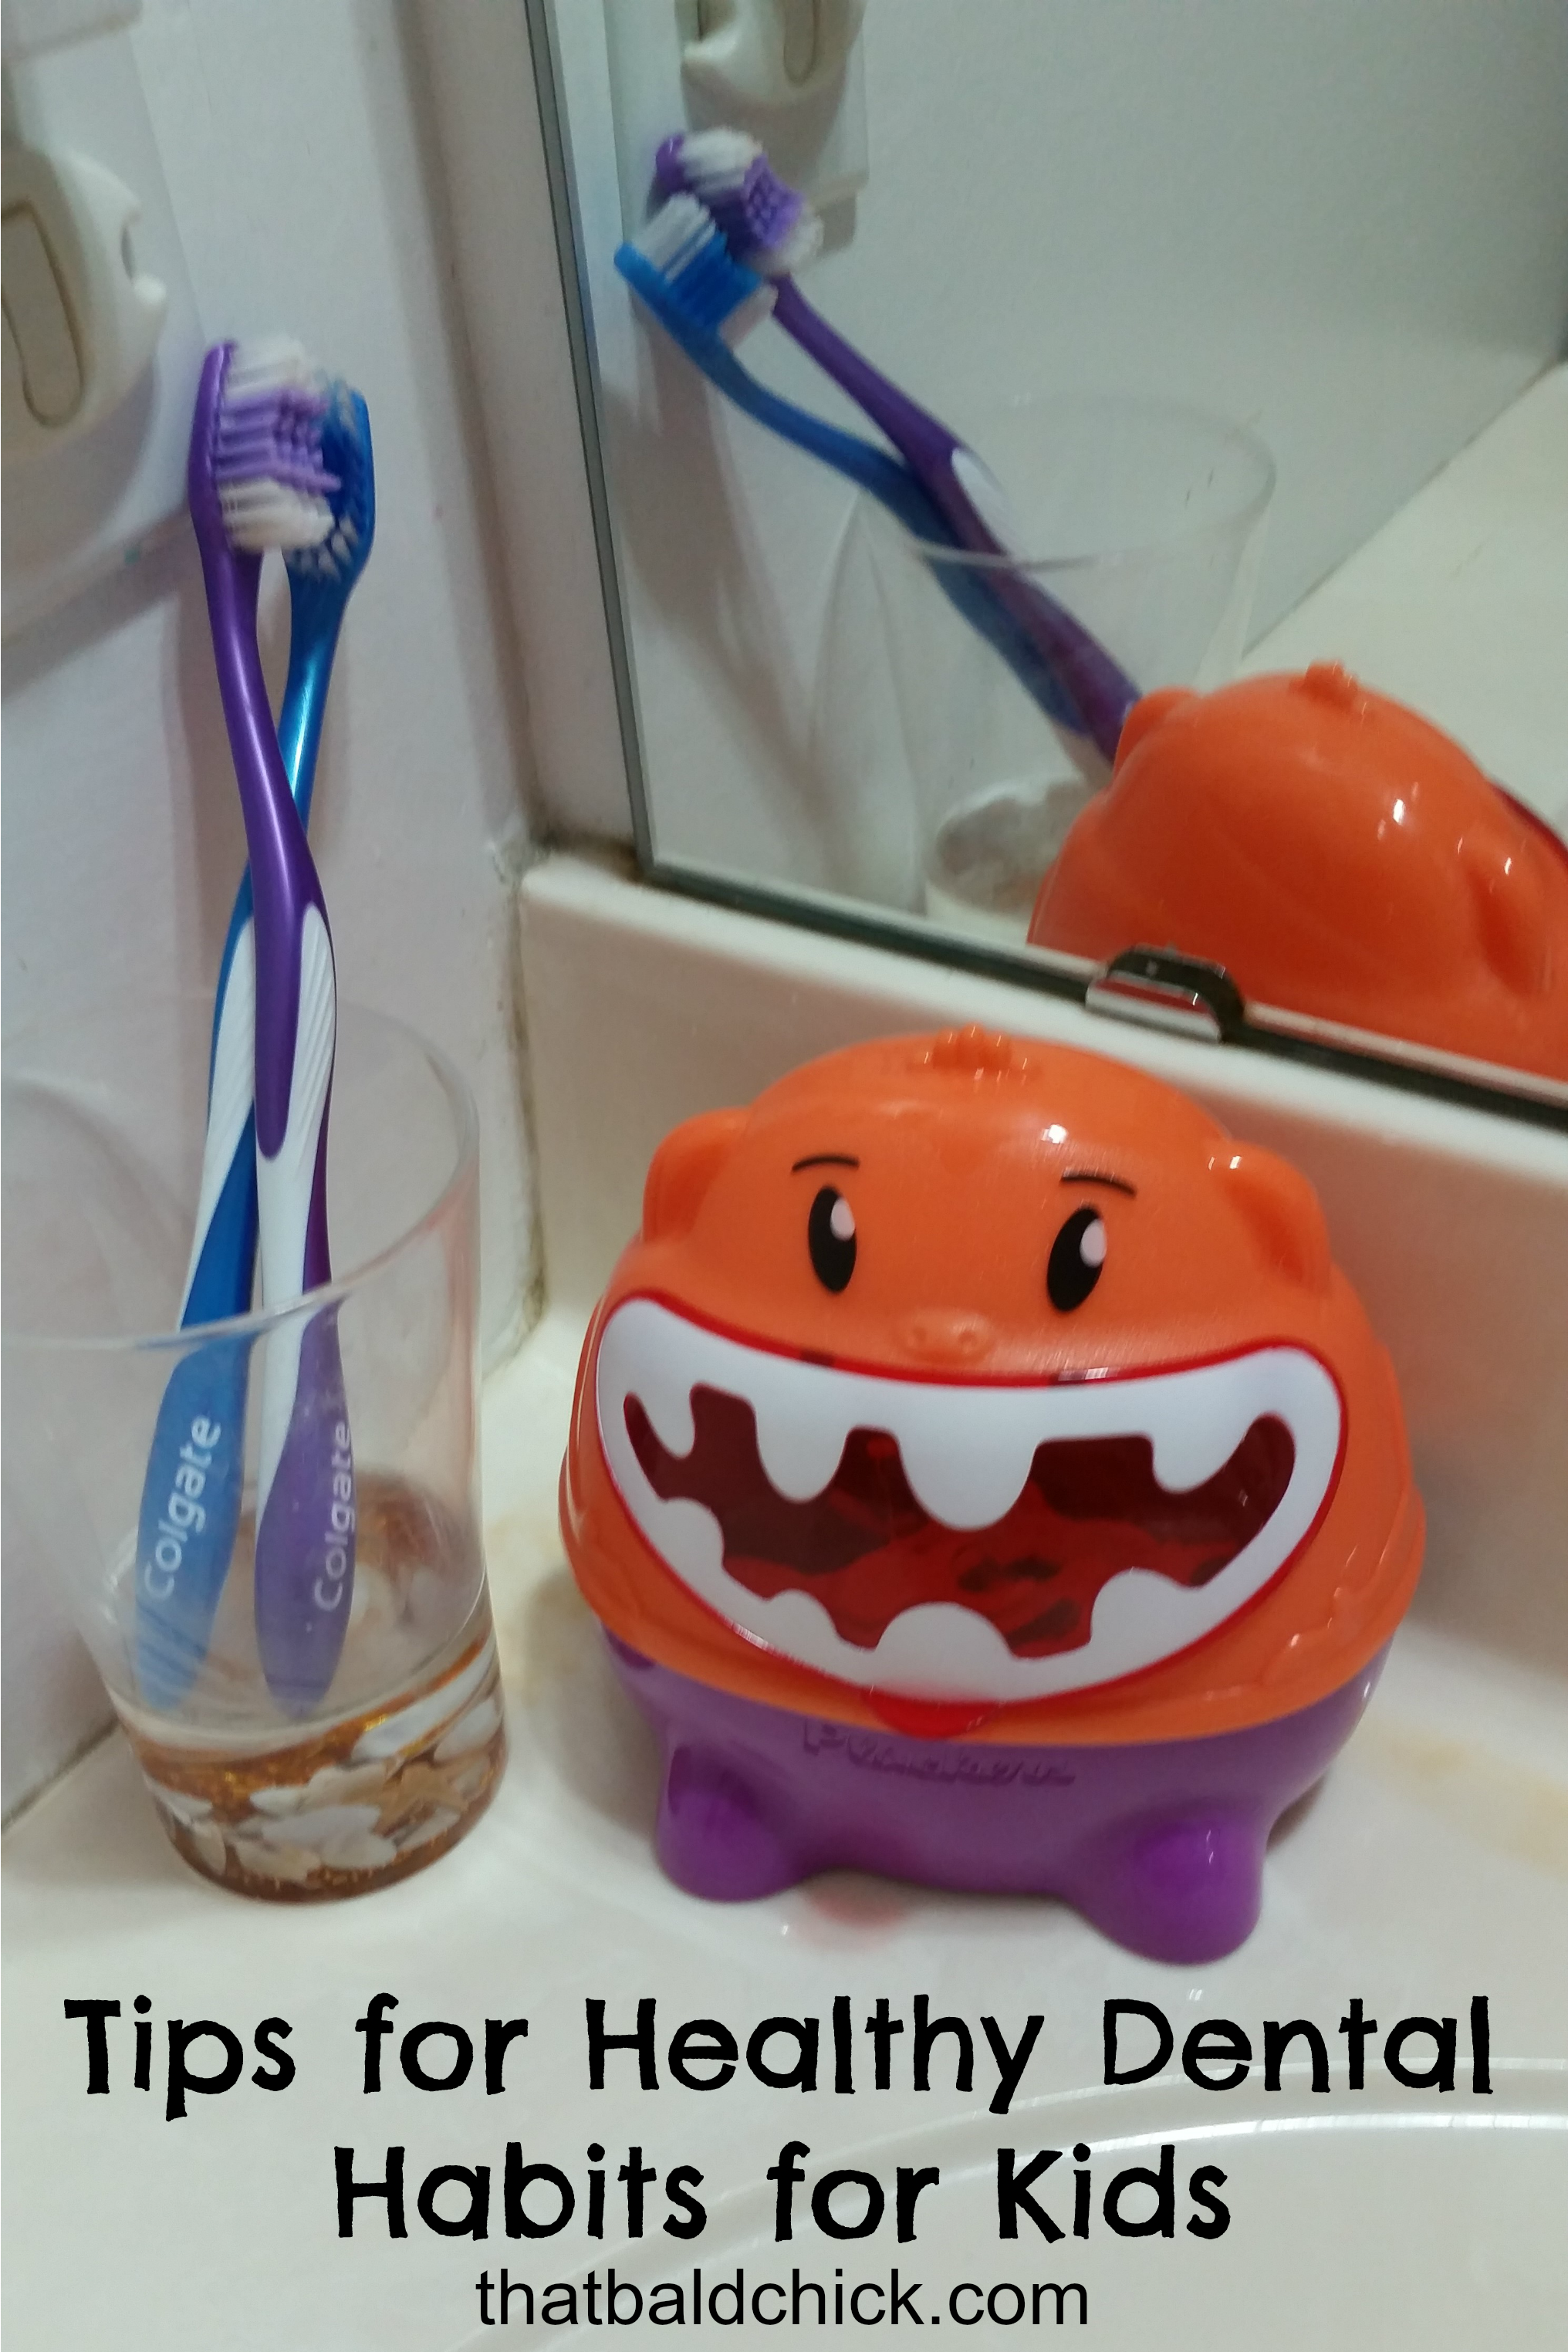 tips for healthy dental habits for kids @thatbaldchick